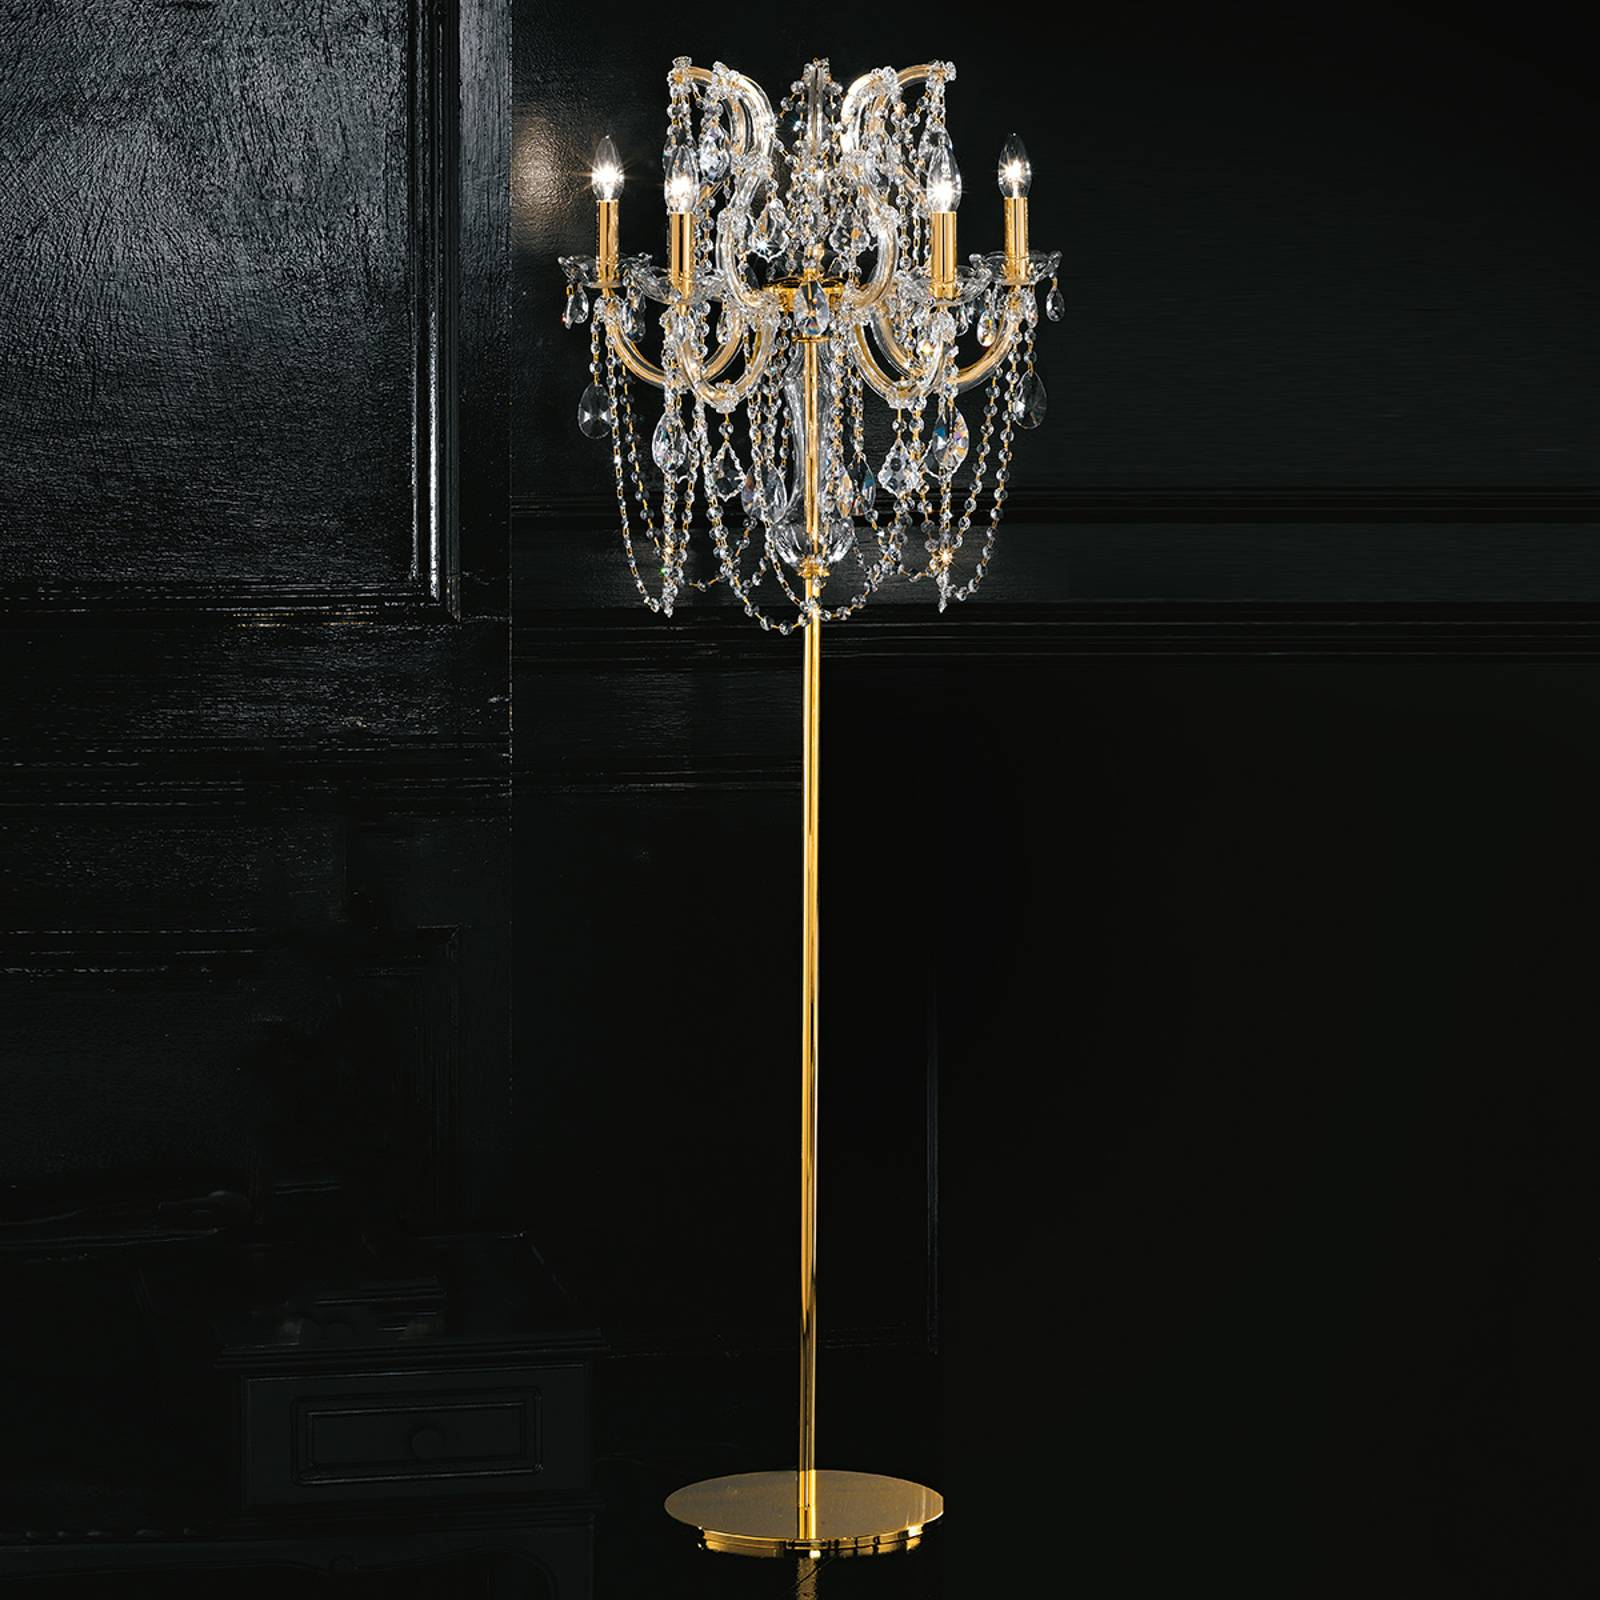 Annino sublime floor lamp with Swarovski elements from Masiero